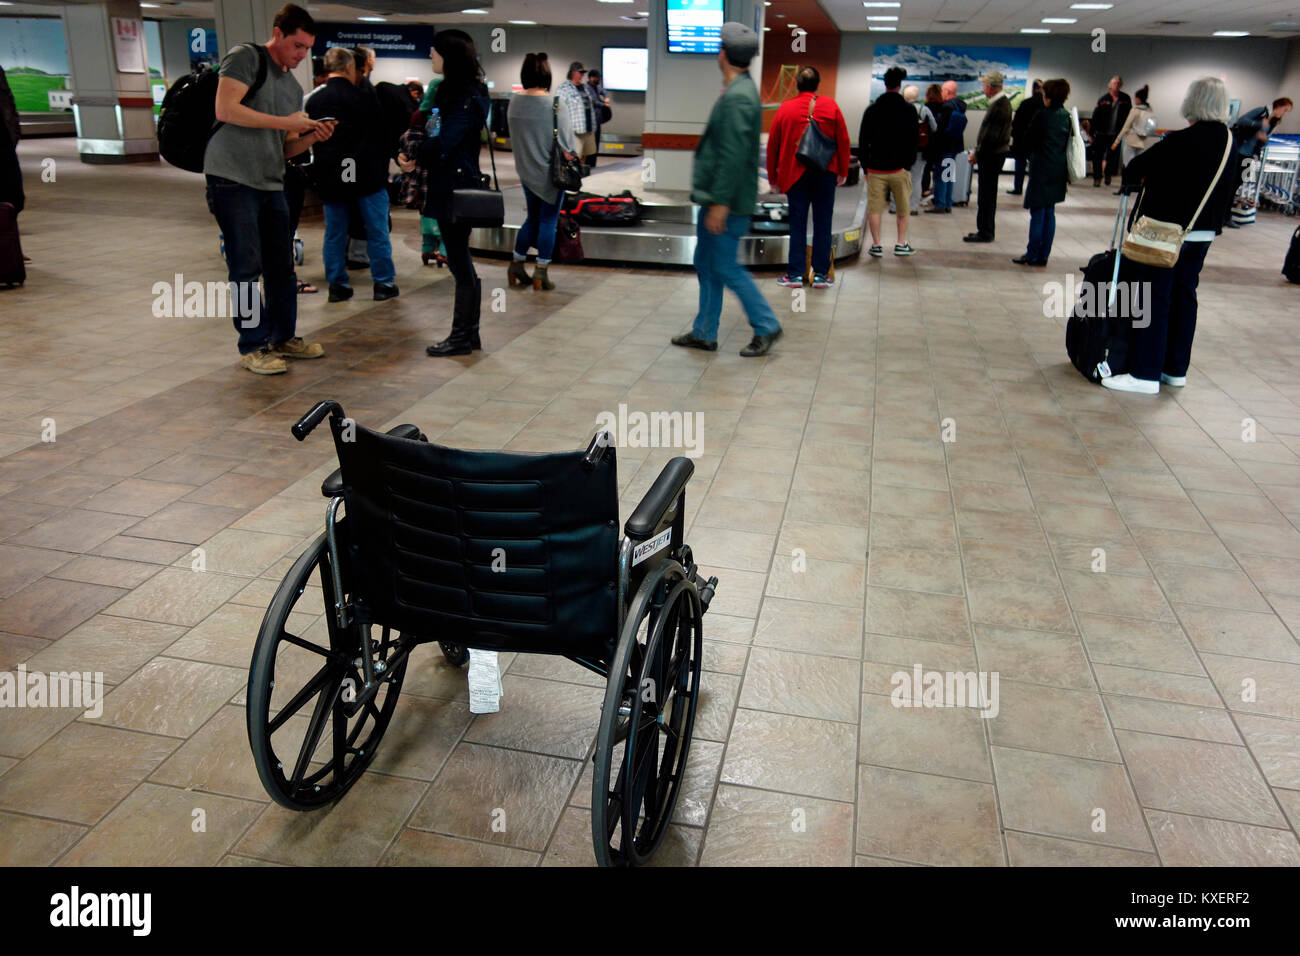 A wheelchair in an airport baggage claim area - Stock Image